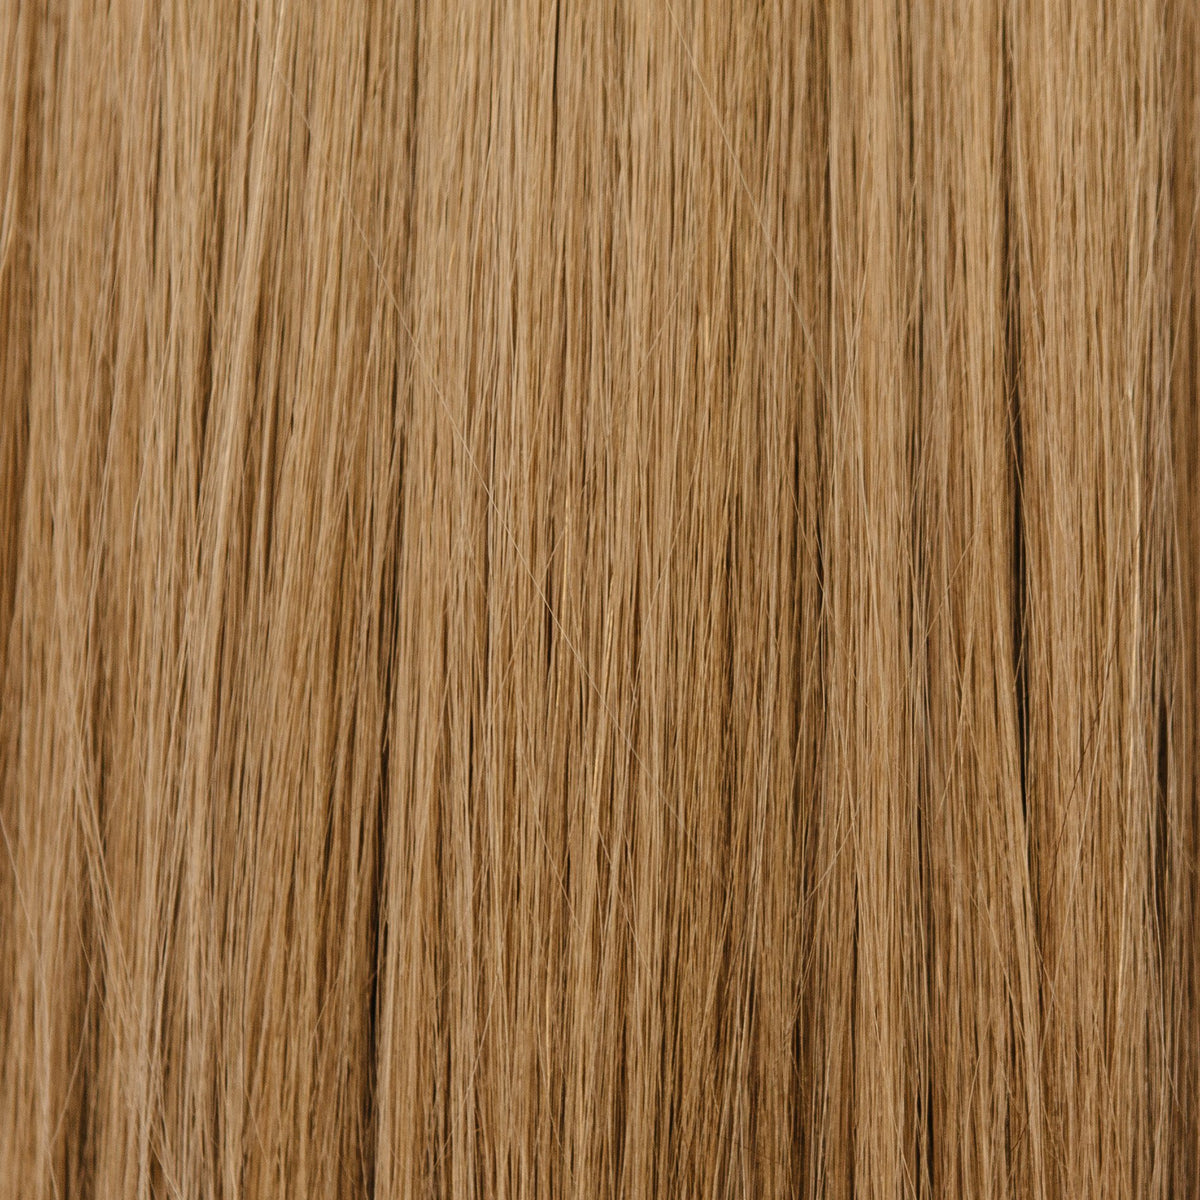 Machine_Sewn_Weft - Laced Hair Machine Sewn Weft Extensions #14